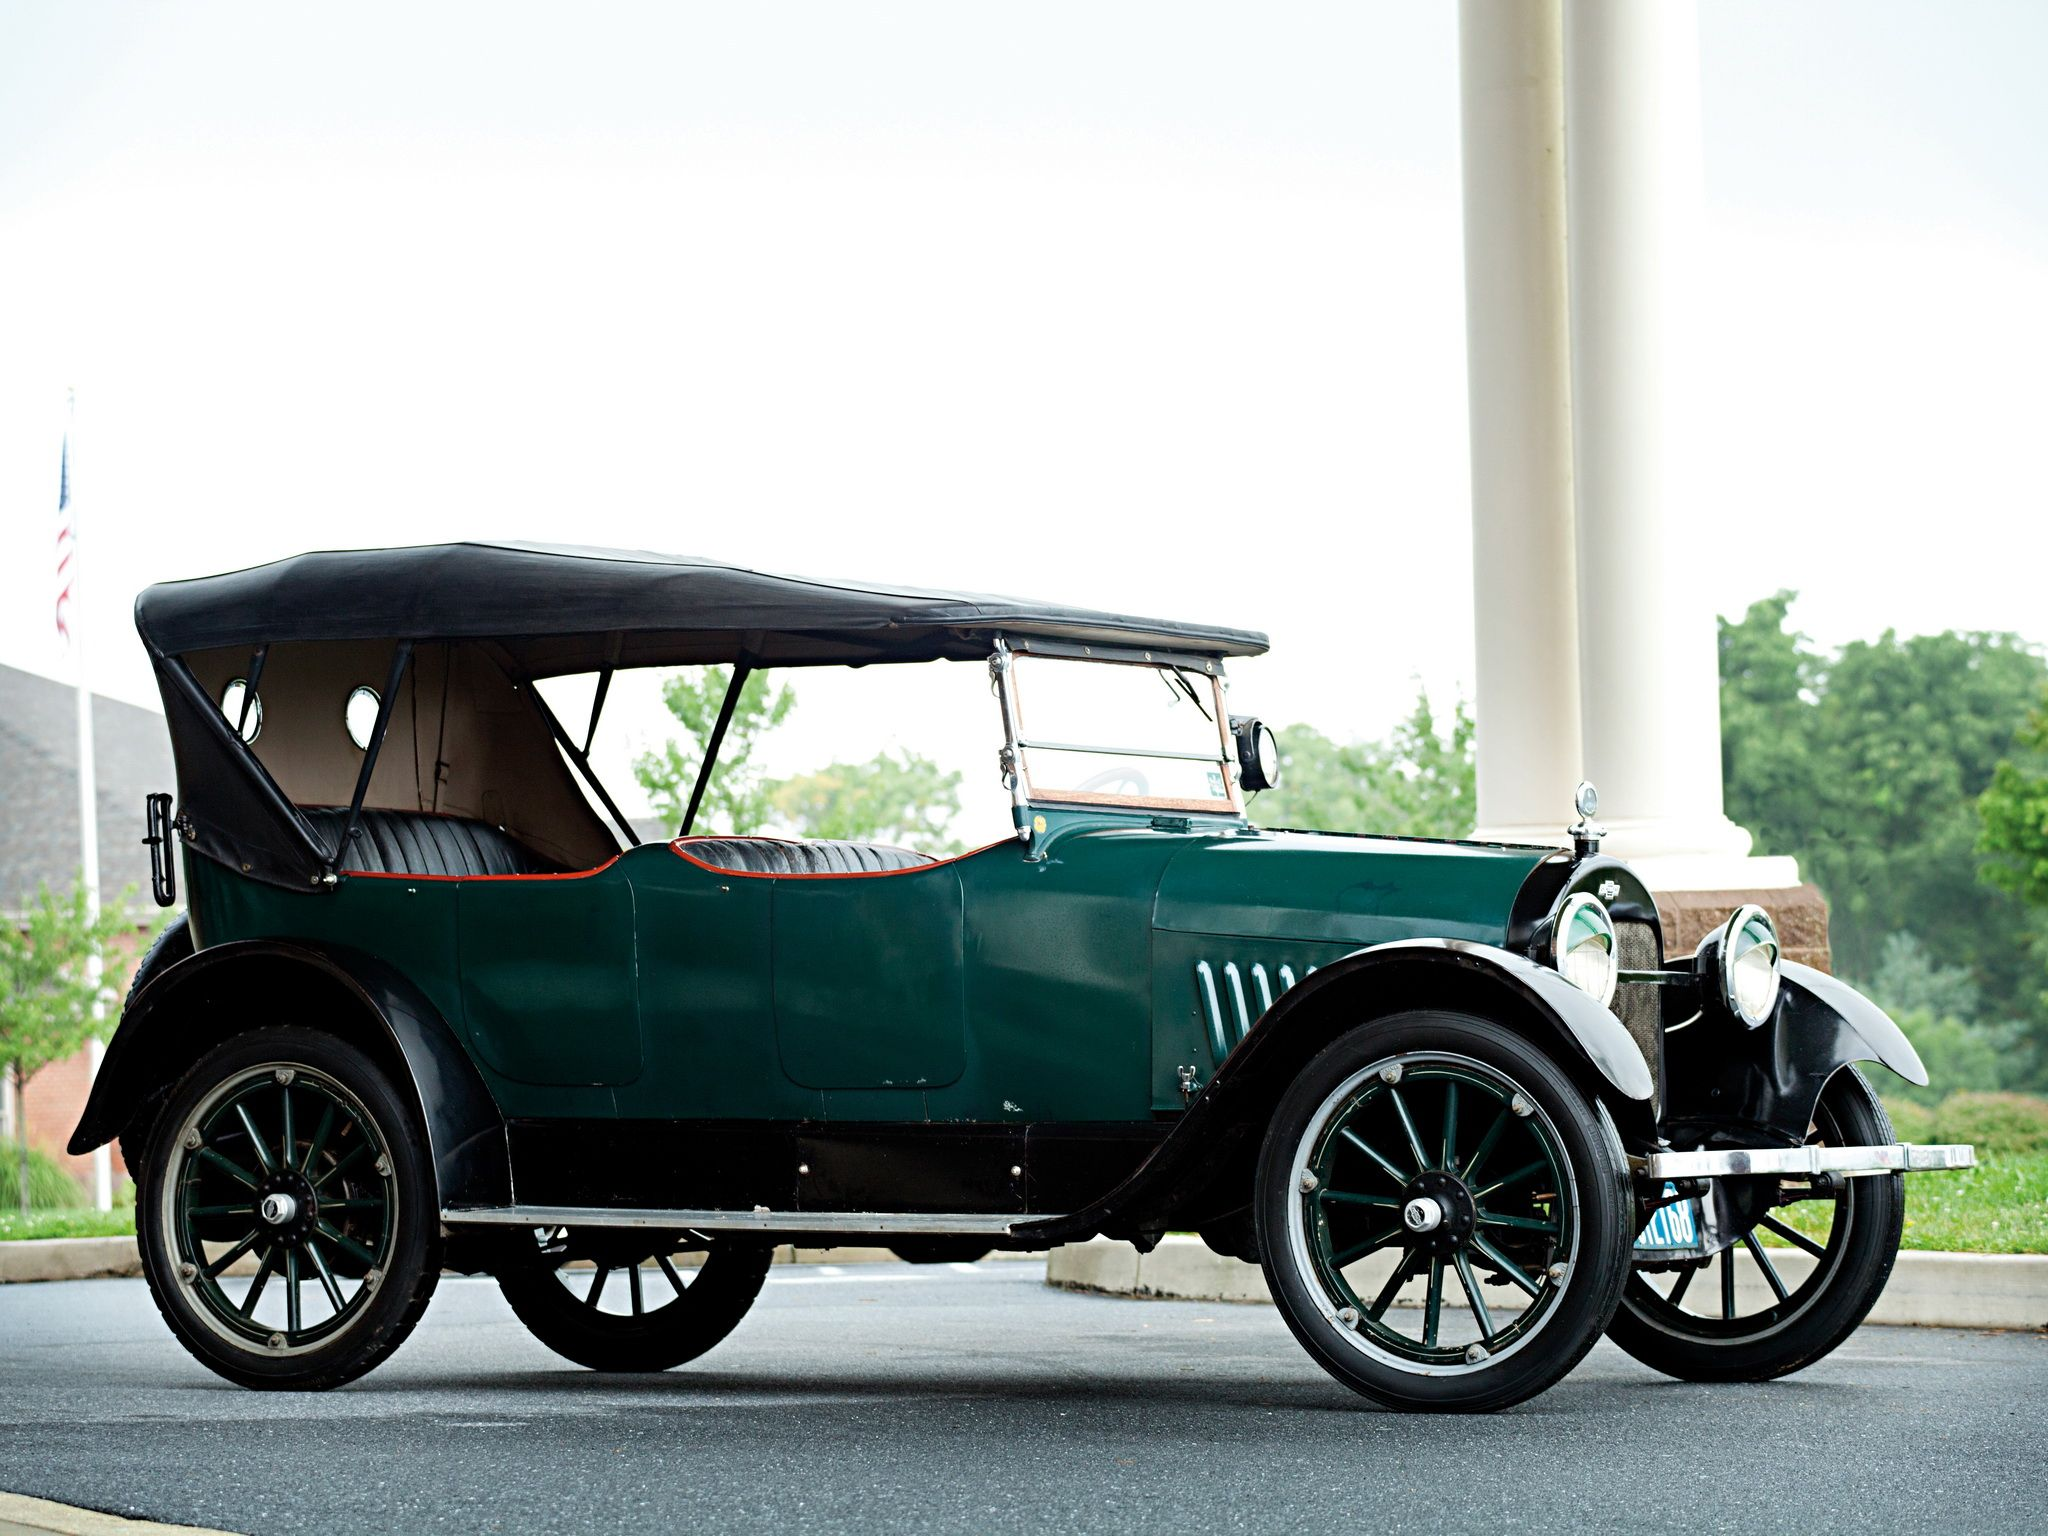 1918 Chevy Series D Touring. 288 cubic inches, 36hp, V8.